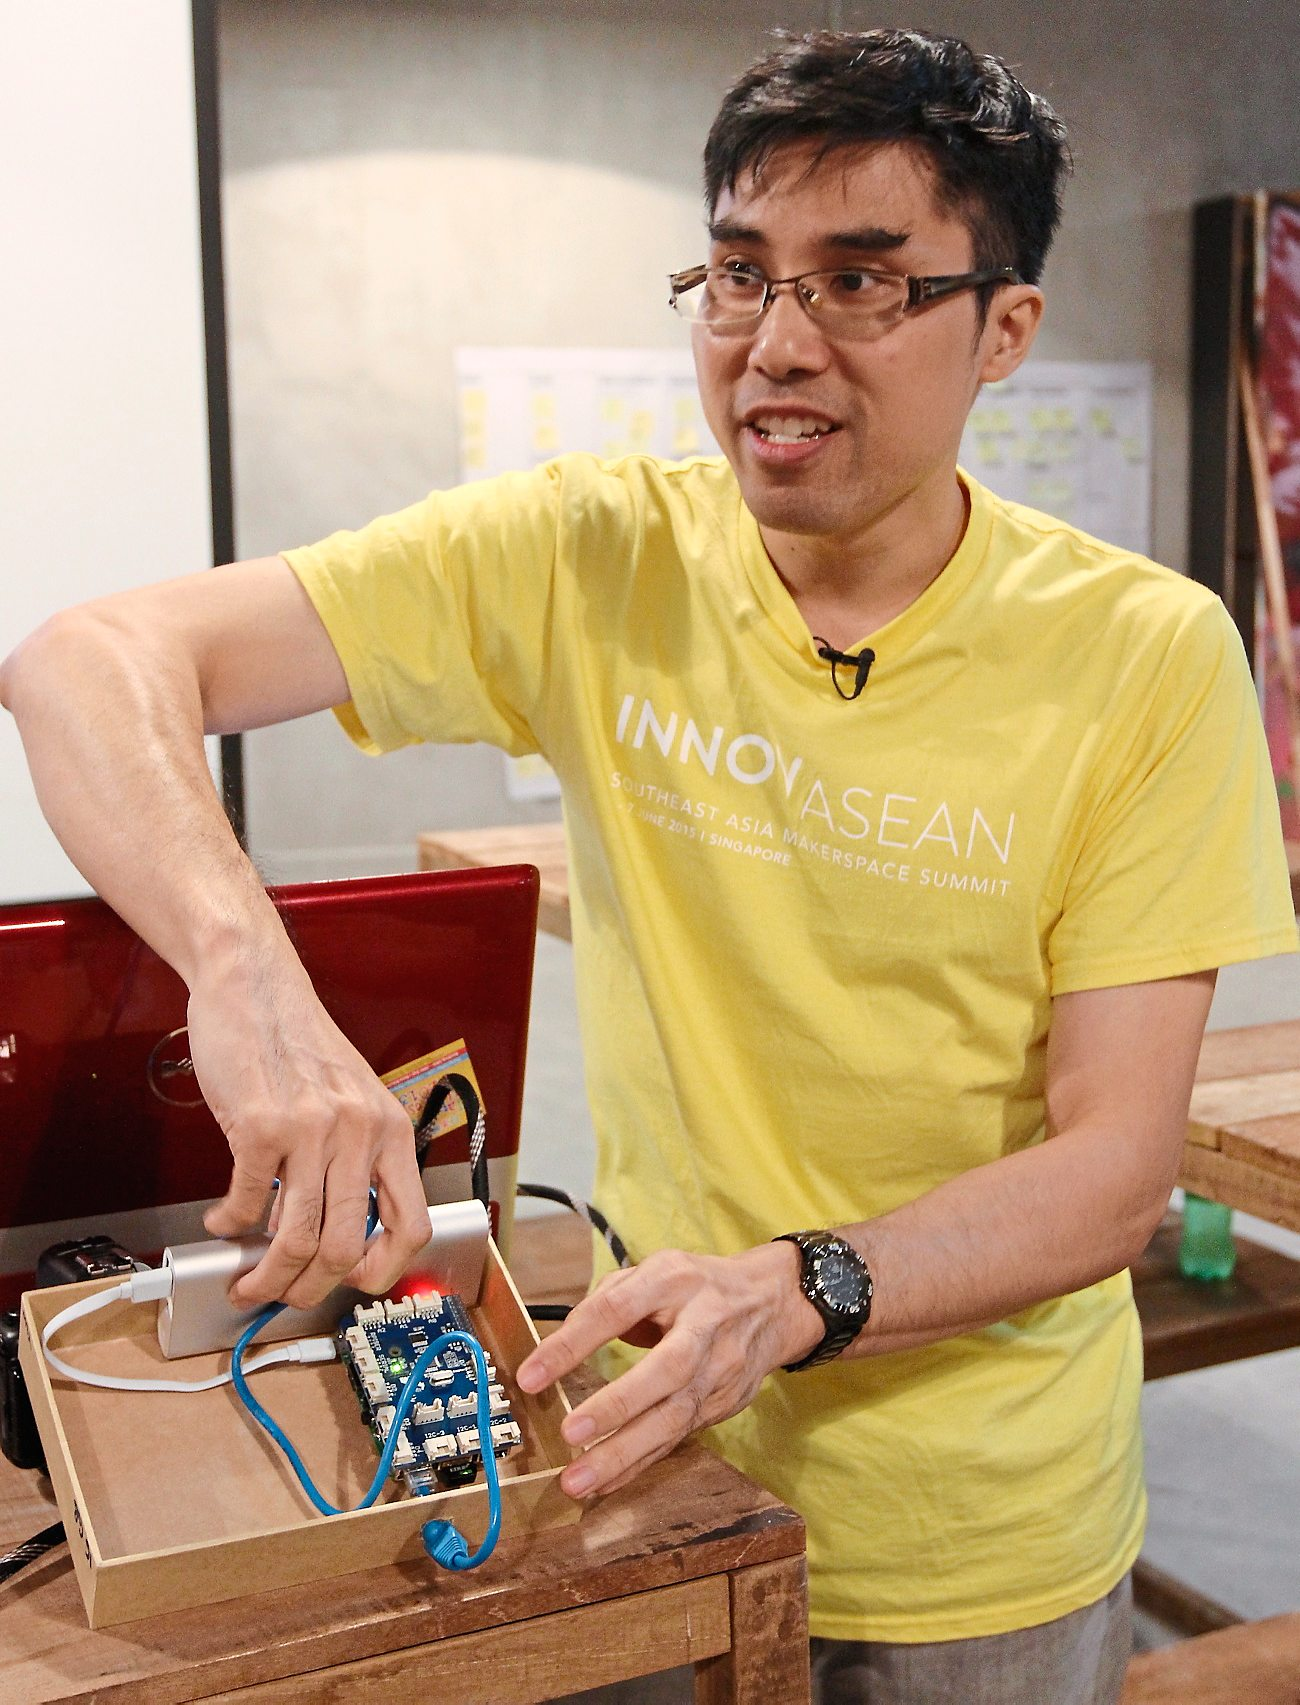 EMBEDDED TECH EVANGELIST: Adrian Lai,  enthusing on the possibilities of the Raspberry Pi and sensors at the Makespace.